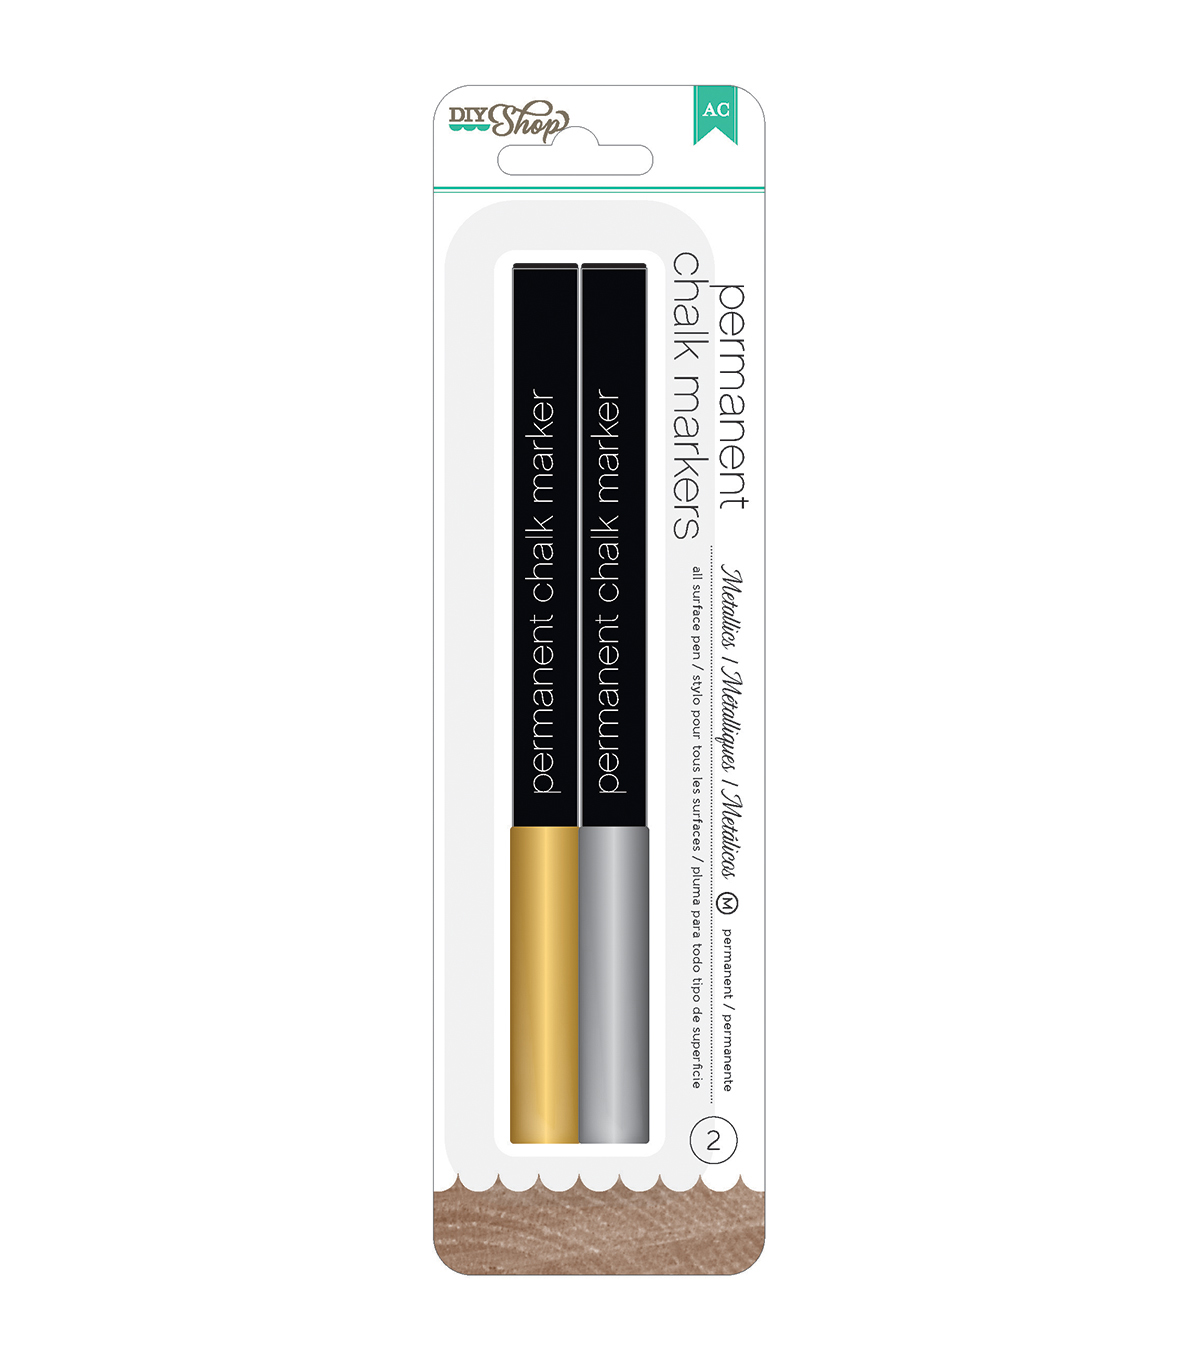 American Crafts DIY Shop 2 Permanent Chalk Markers Broad Tip